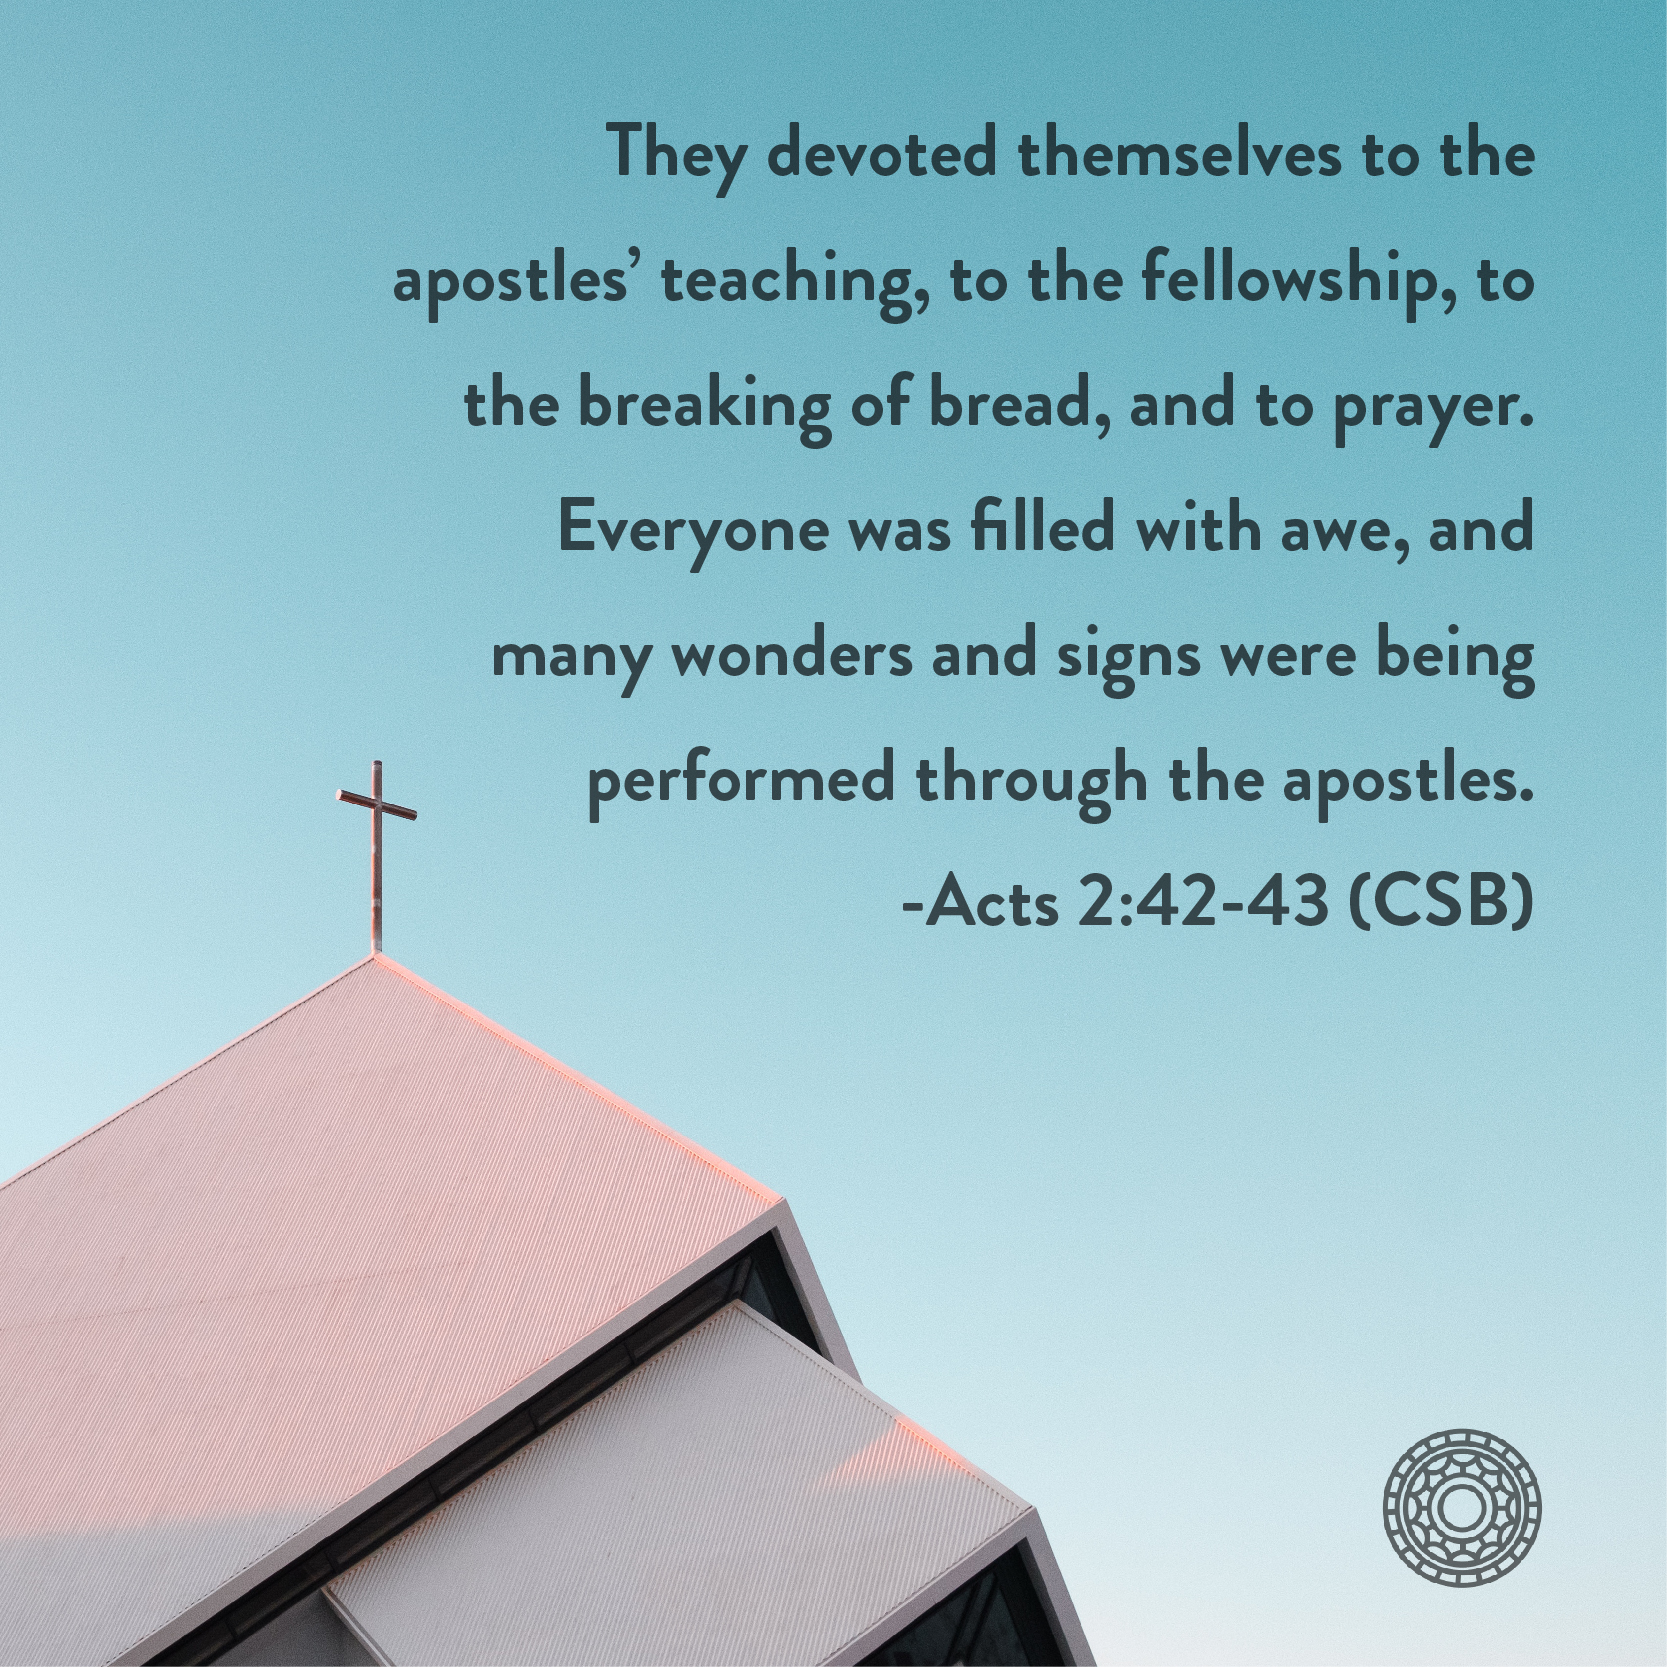 acts 2 quote_5.jpg